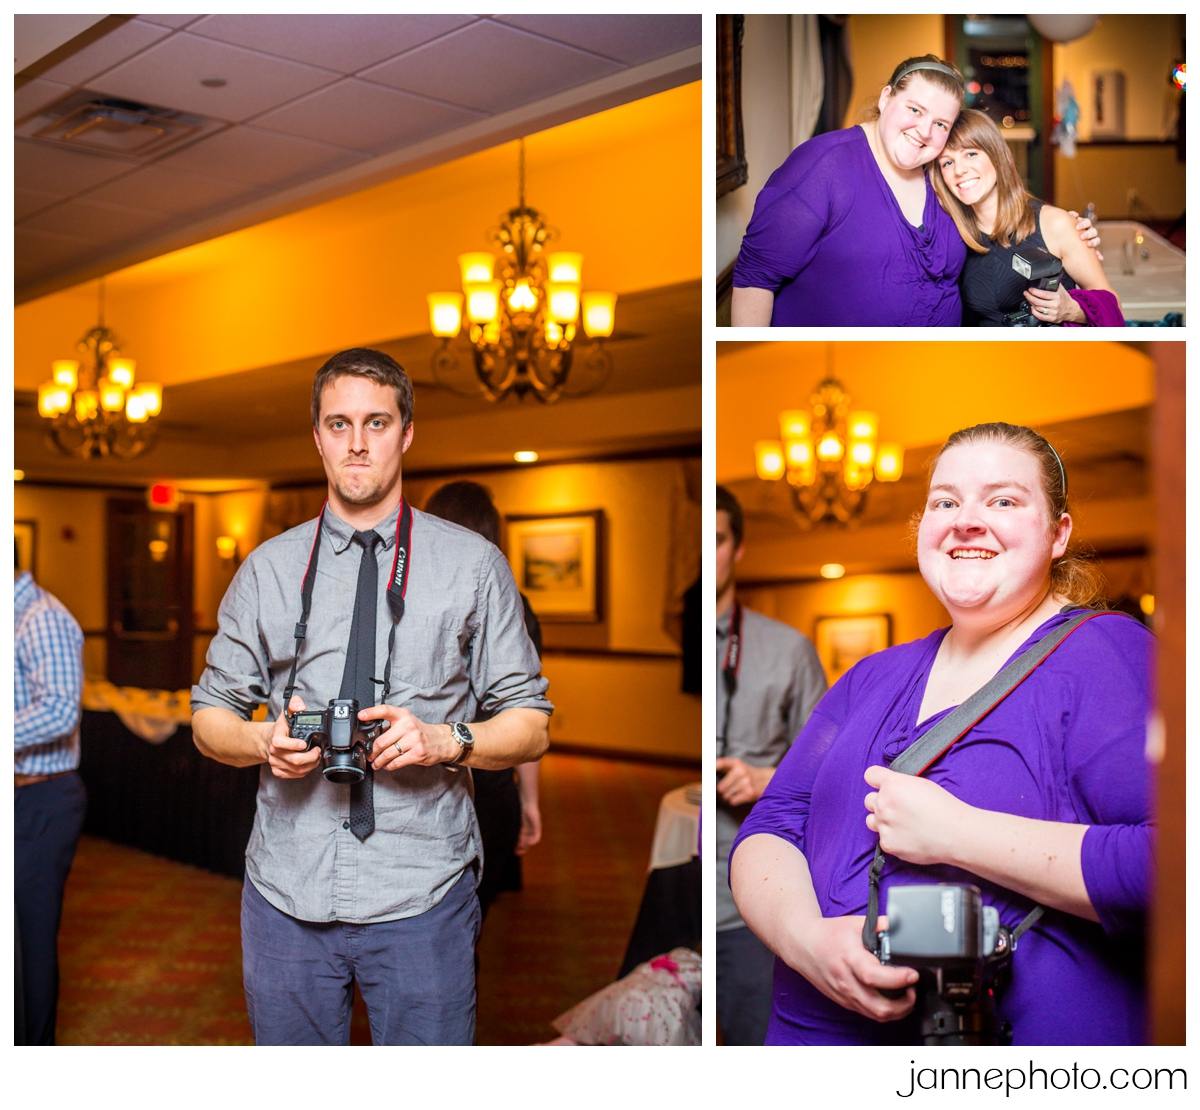 Behind-the-Scenes-Wedding-Photography-001